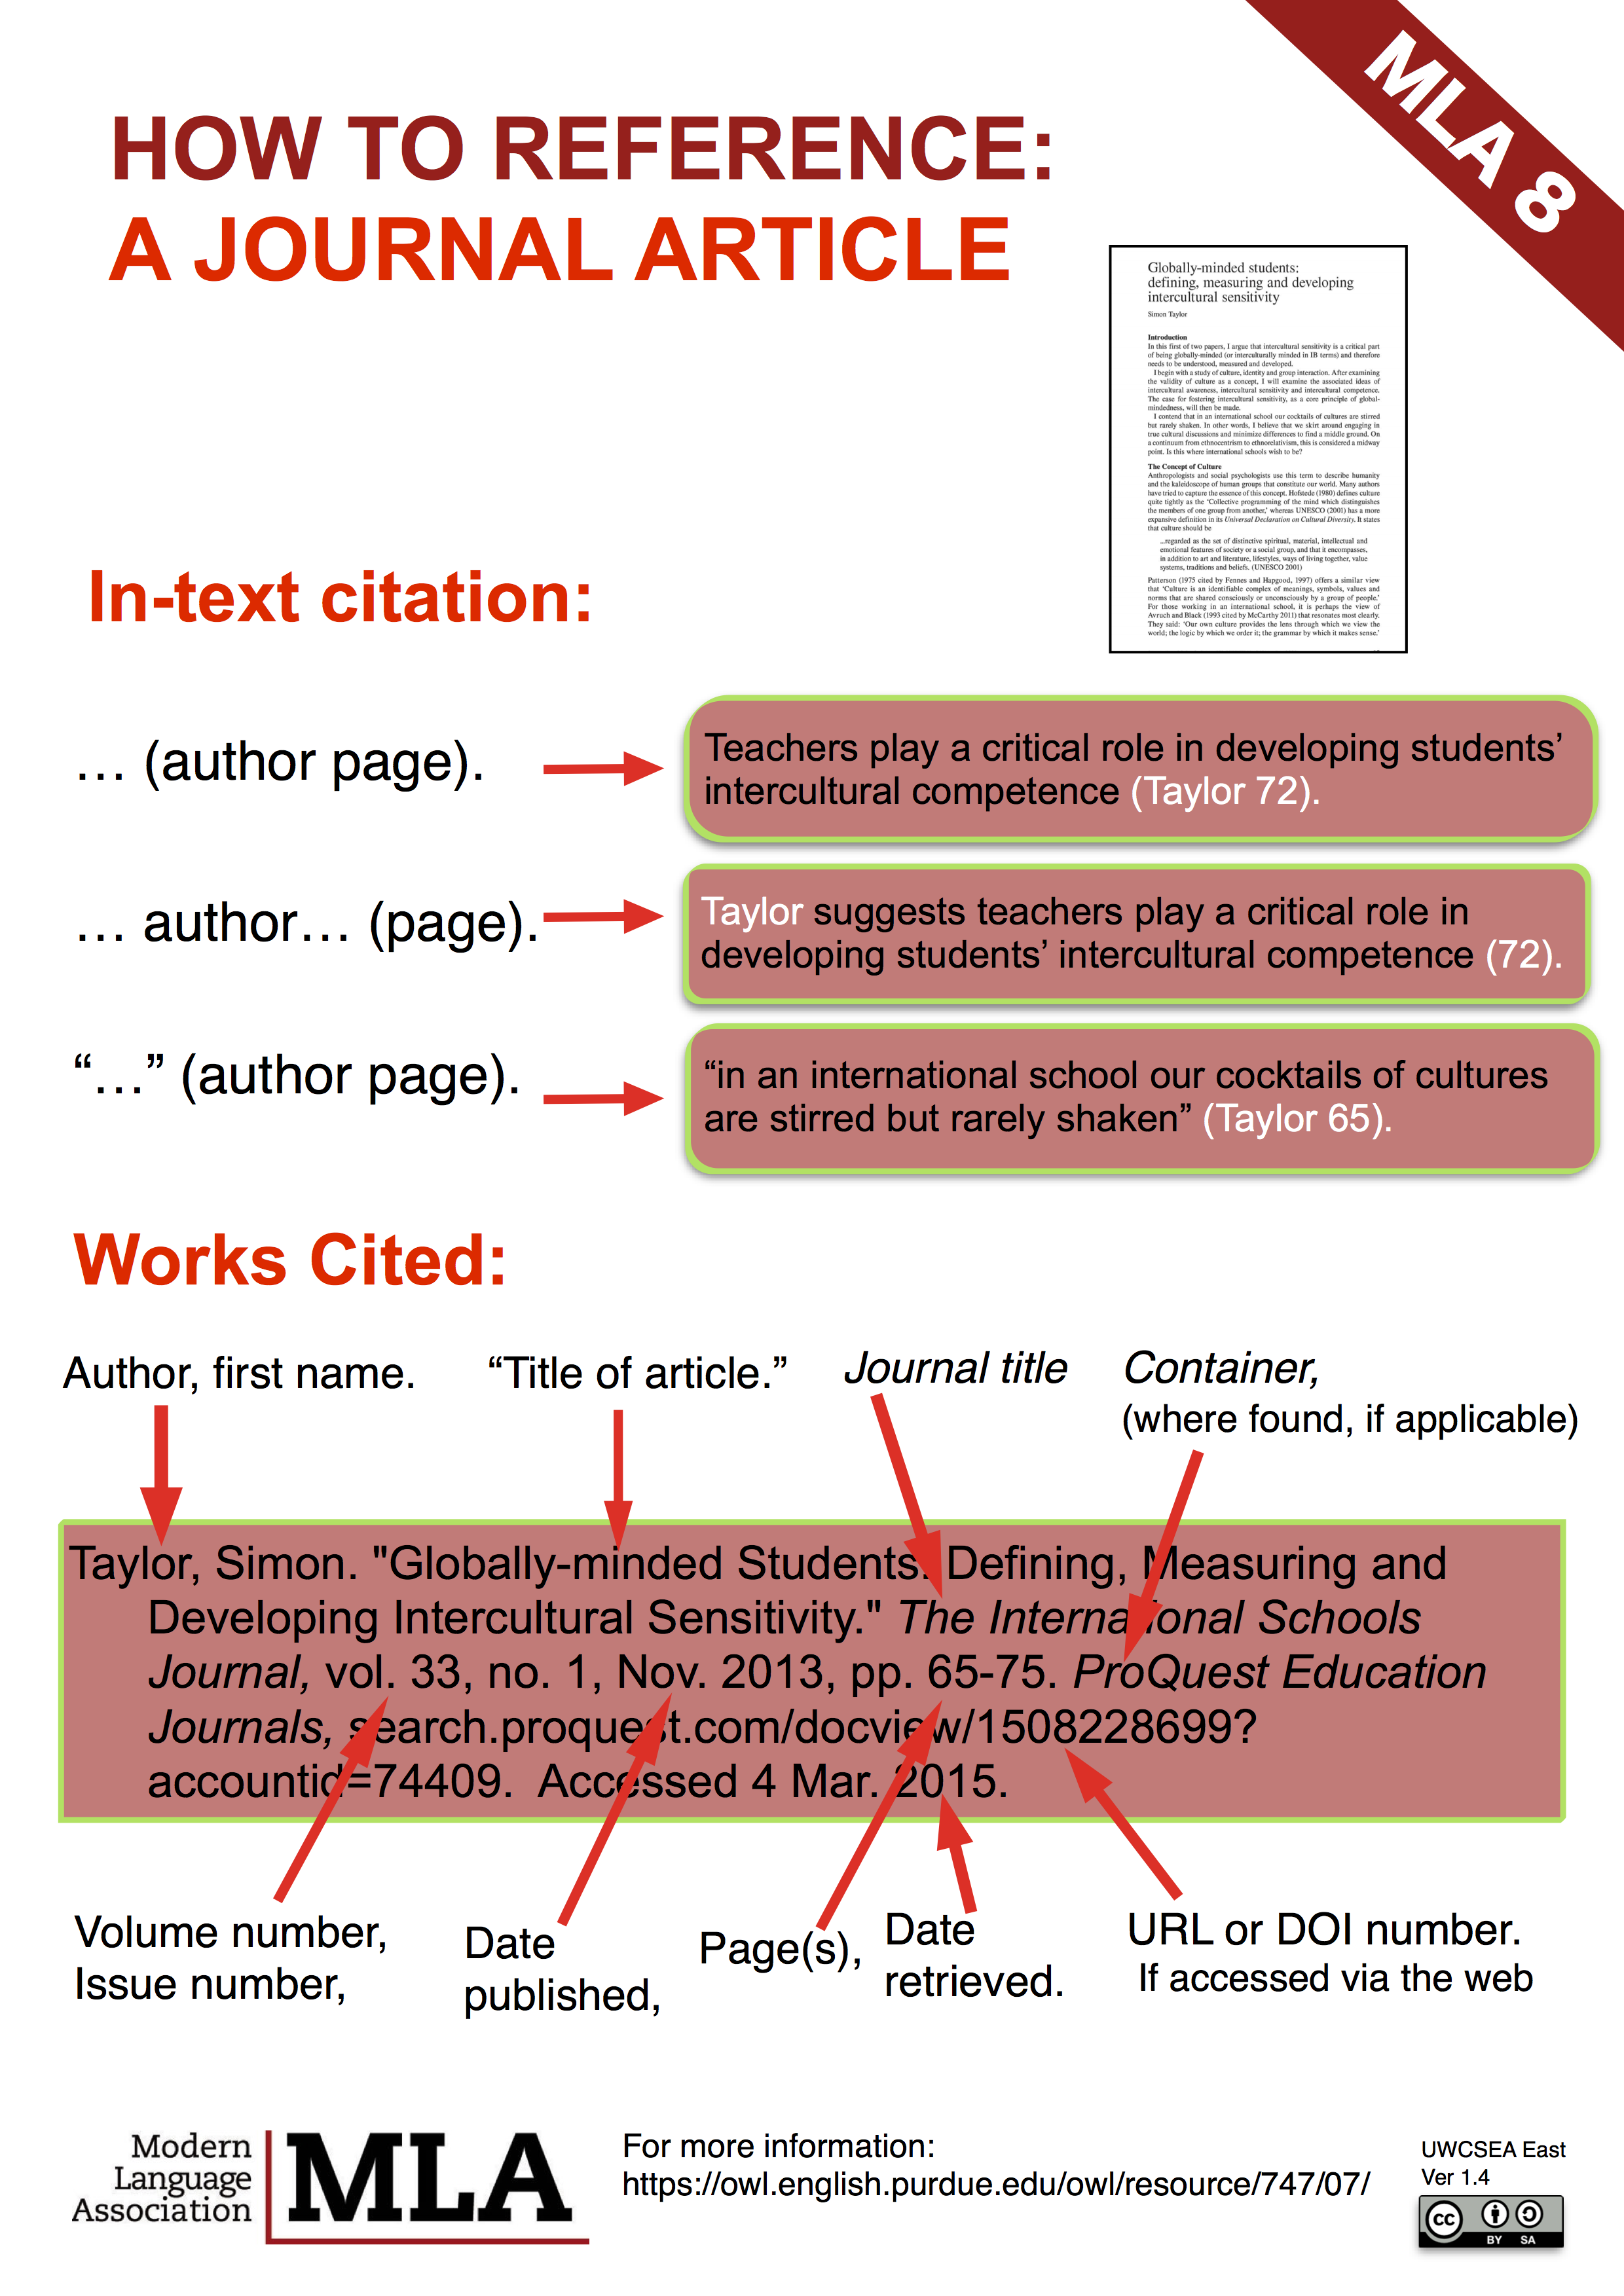 A Guide To Citation Following The Mla8 Format Includes In Text Citations Essay Writing Help College Application Essay Examples College Admission Essay Examples